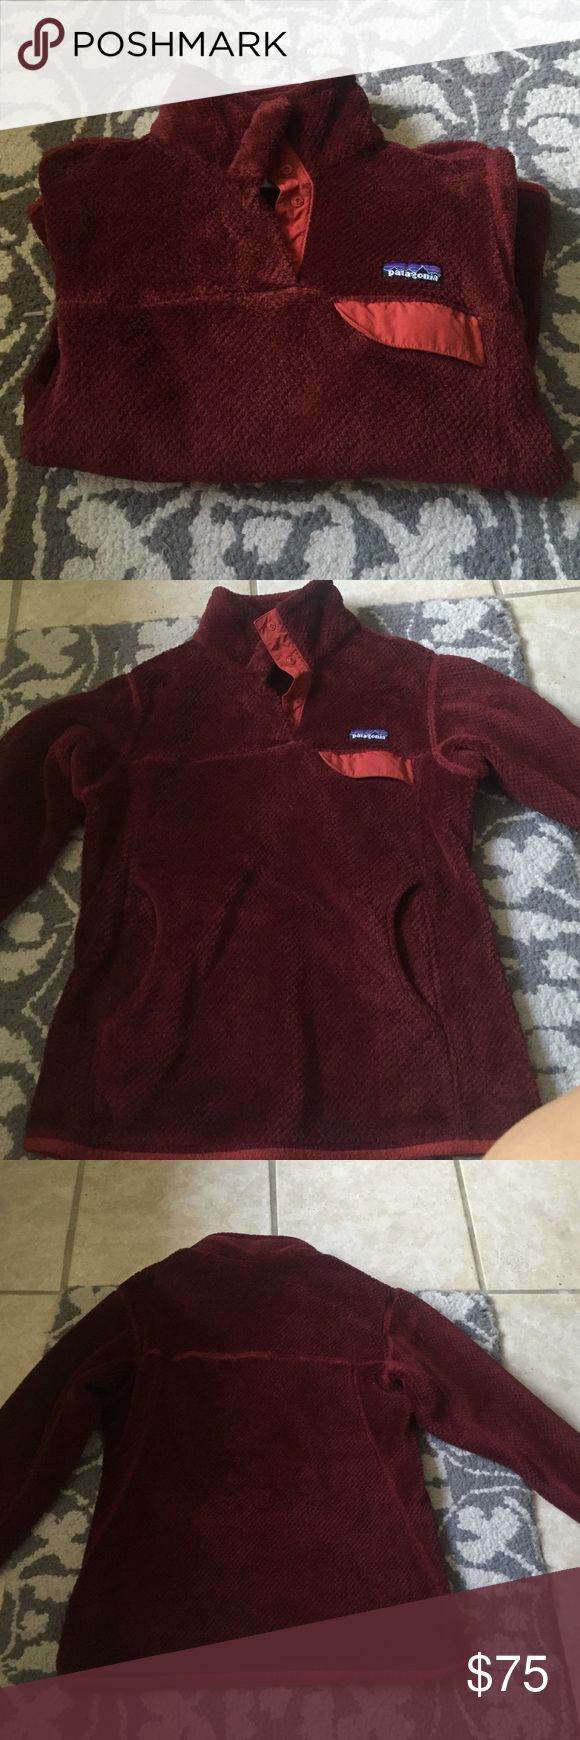 ⚡️FLASH SALE ⚡️Patagonia Re-Tool Snap-T Pullover Women's size small. Used but in perfect condition. Burgundy color. If you have any questions feel free to ask!! On merc for $60. ⚡️today only FLASH SALE⚡️ Patagonia Jackets & Coats